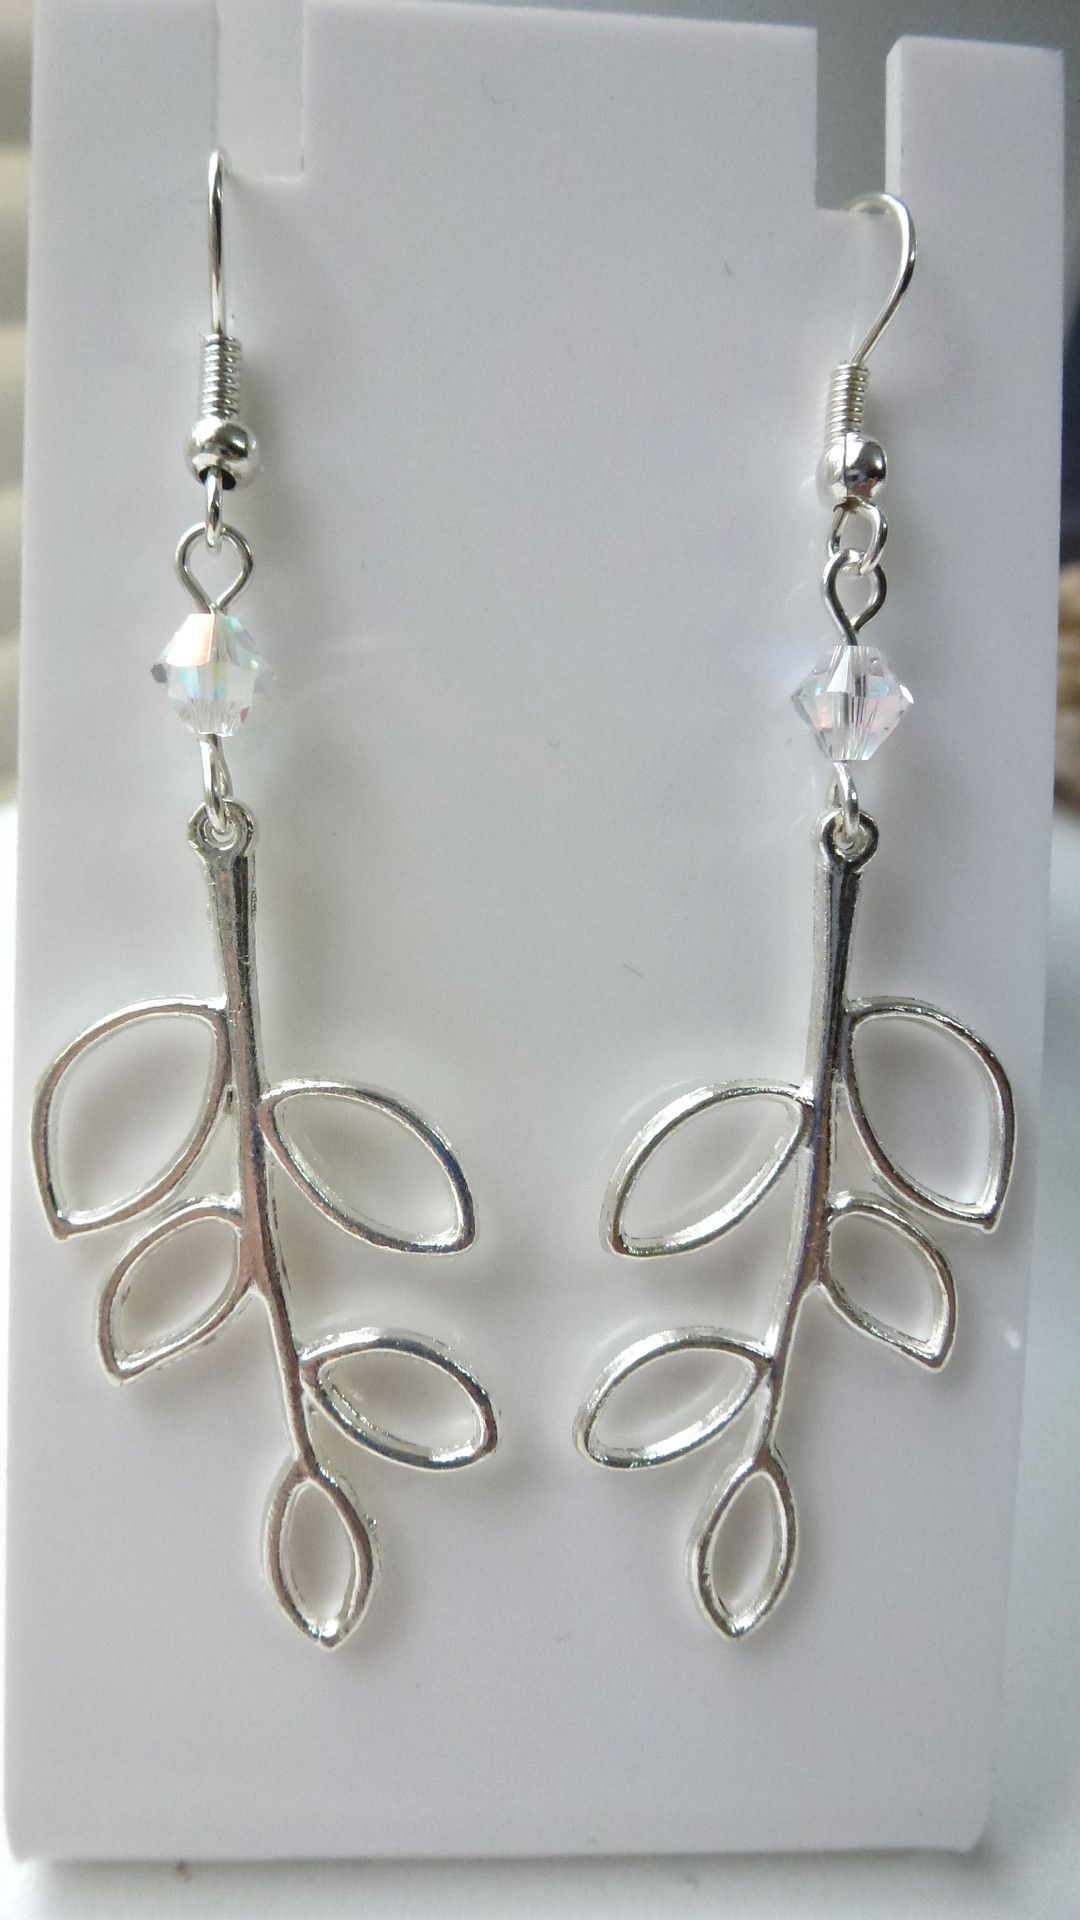 Swaroski Crystal/Leaf Earrings - Multiple Colours Available